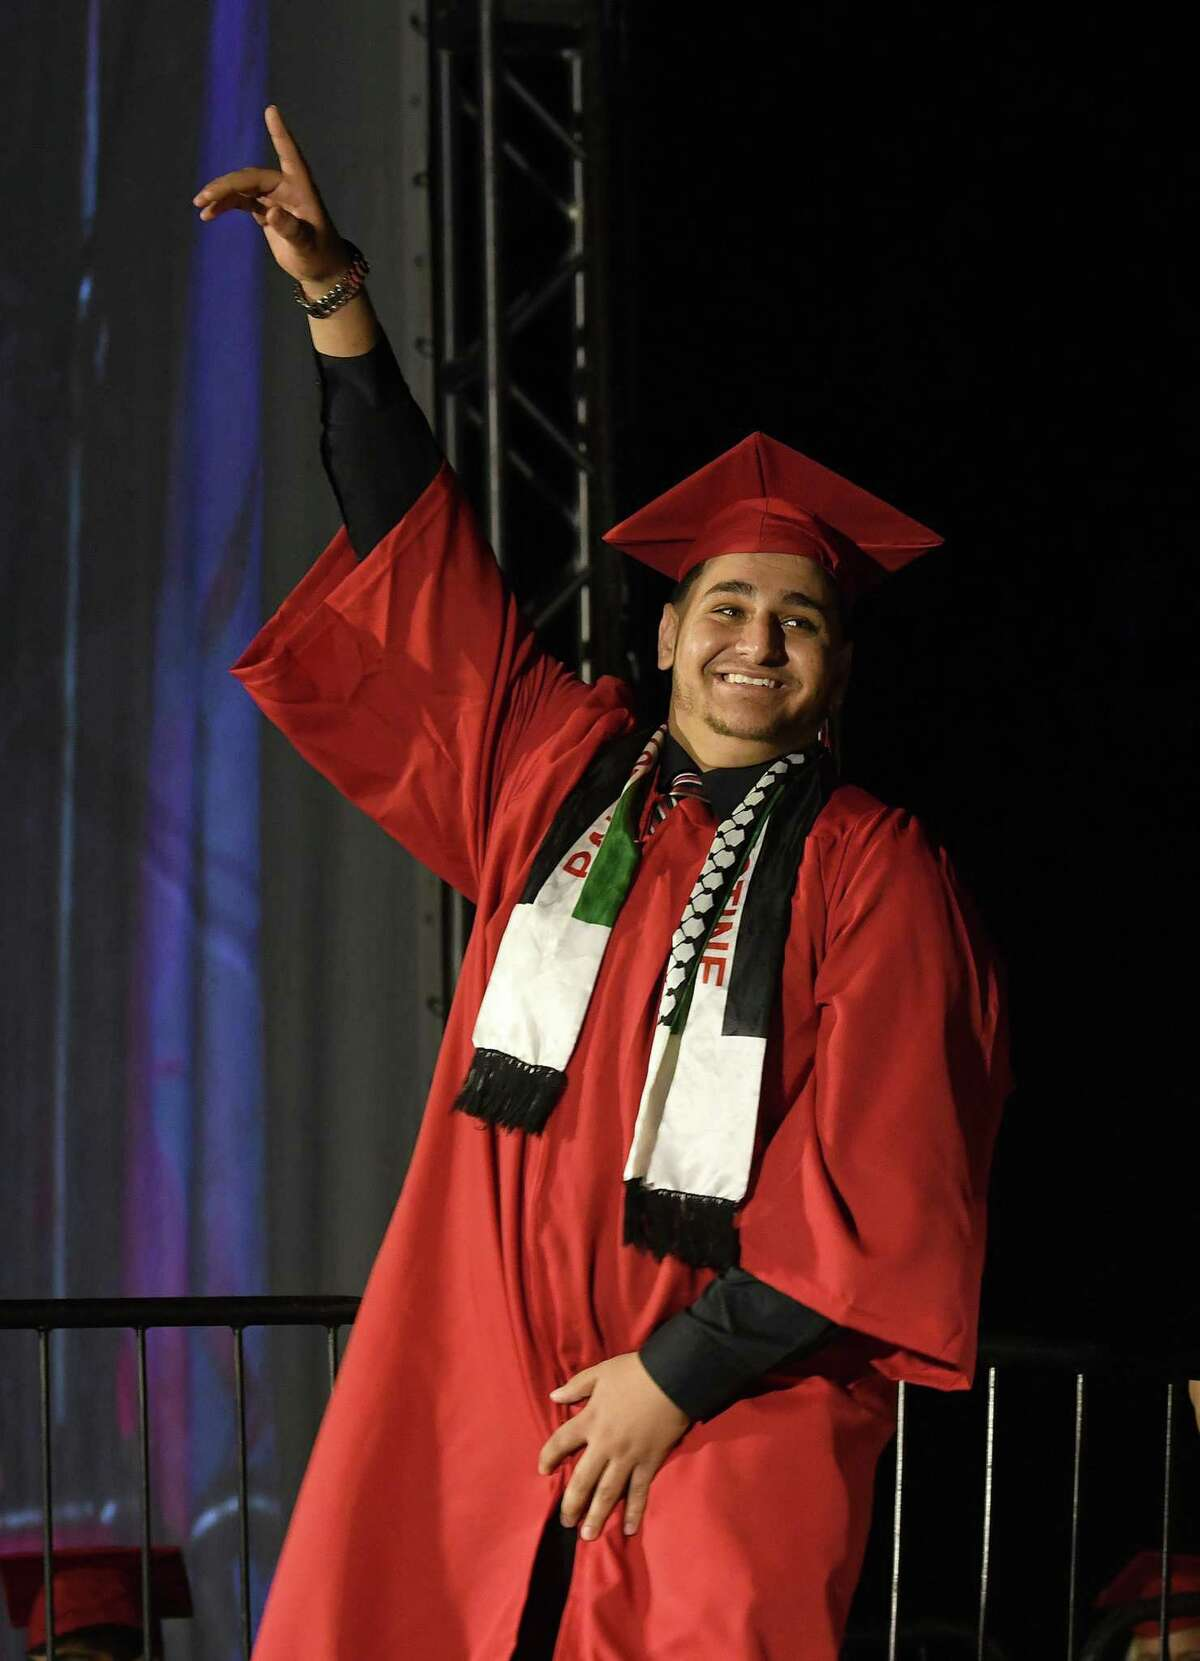 Mohammad Shaham, 18, just before receiving his high school diploma. Fairfield Warde High School holds its graduation ceremony at Jennings Beach in Fairfield, Tuesday evening, June 15, 2021.